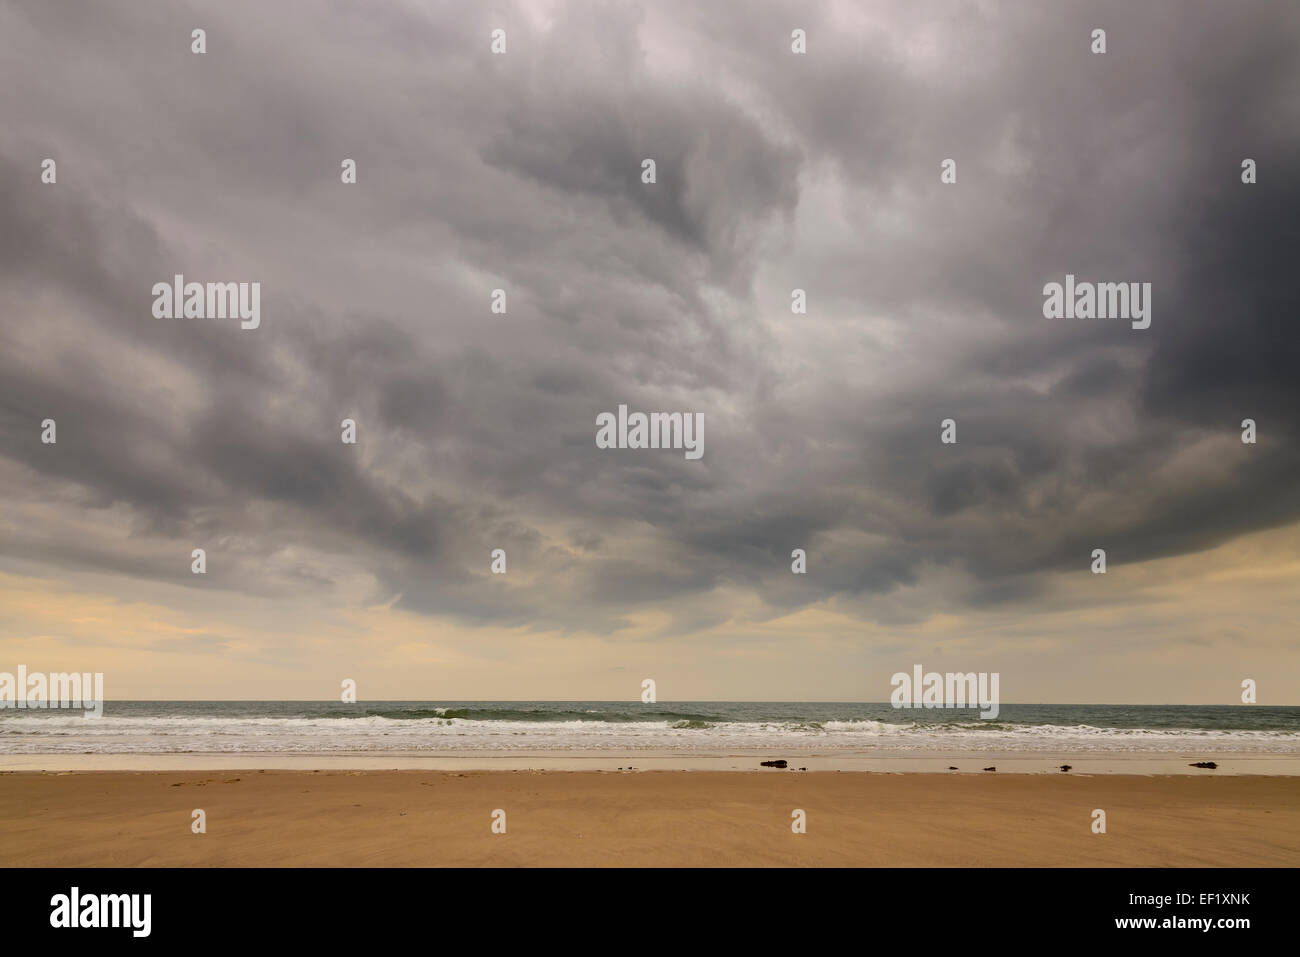 Storm clouds over Ross Sands, Northumberland, England - Stock Image